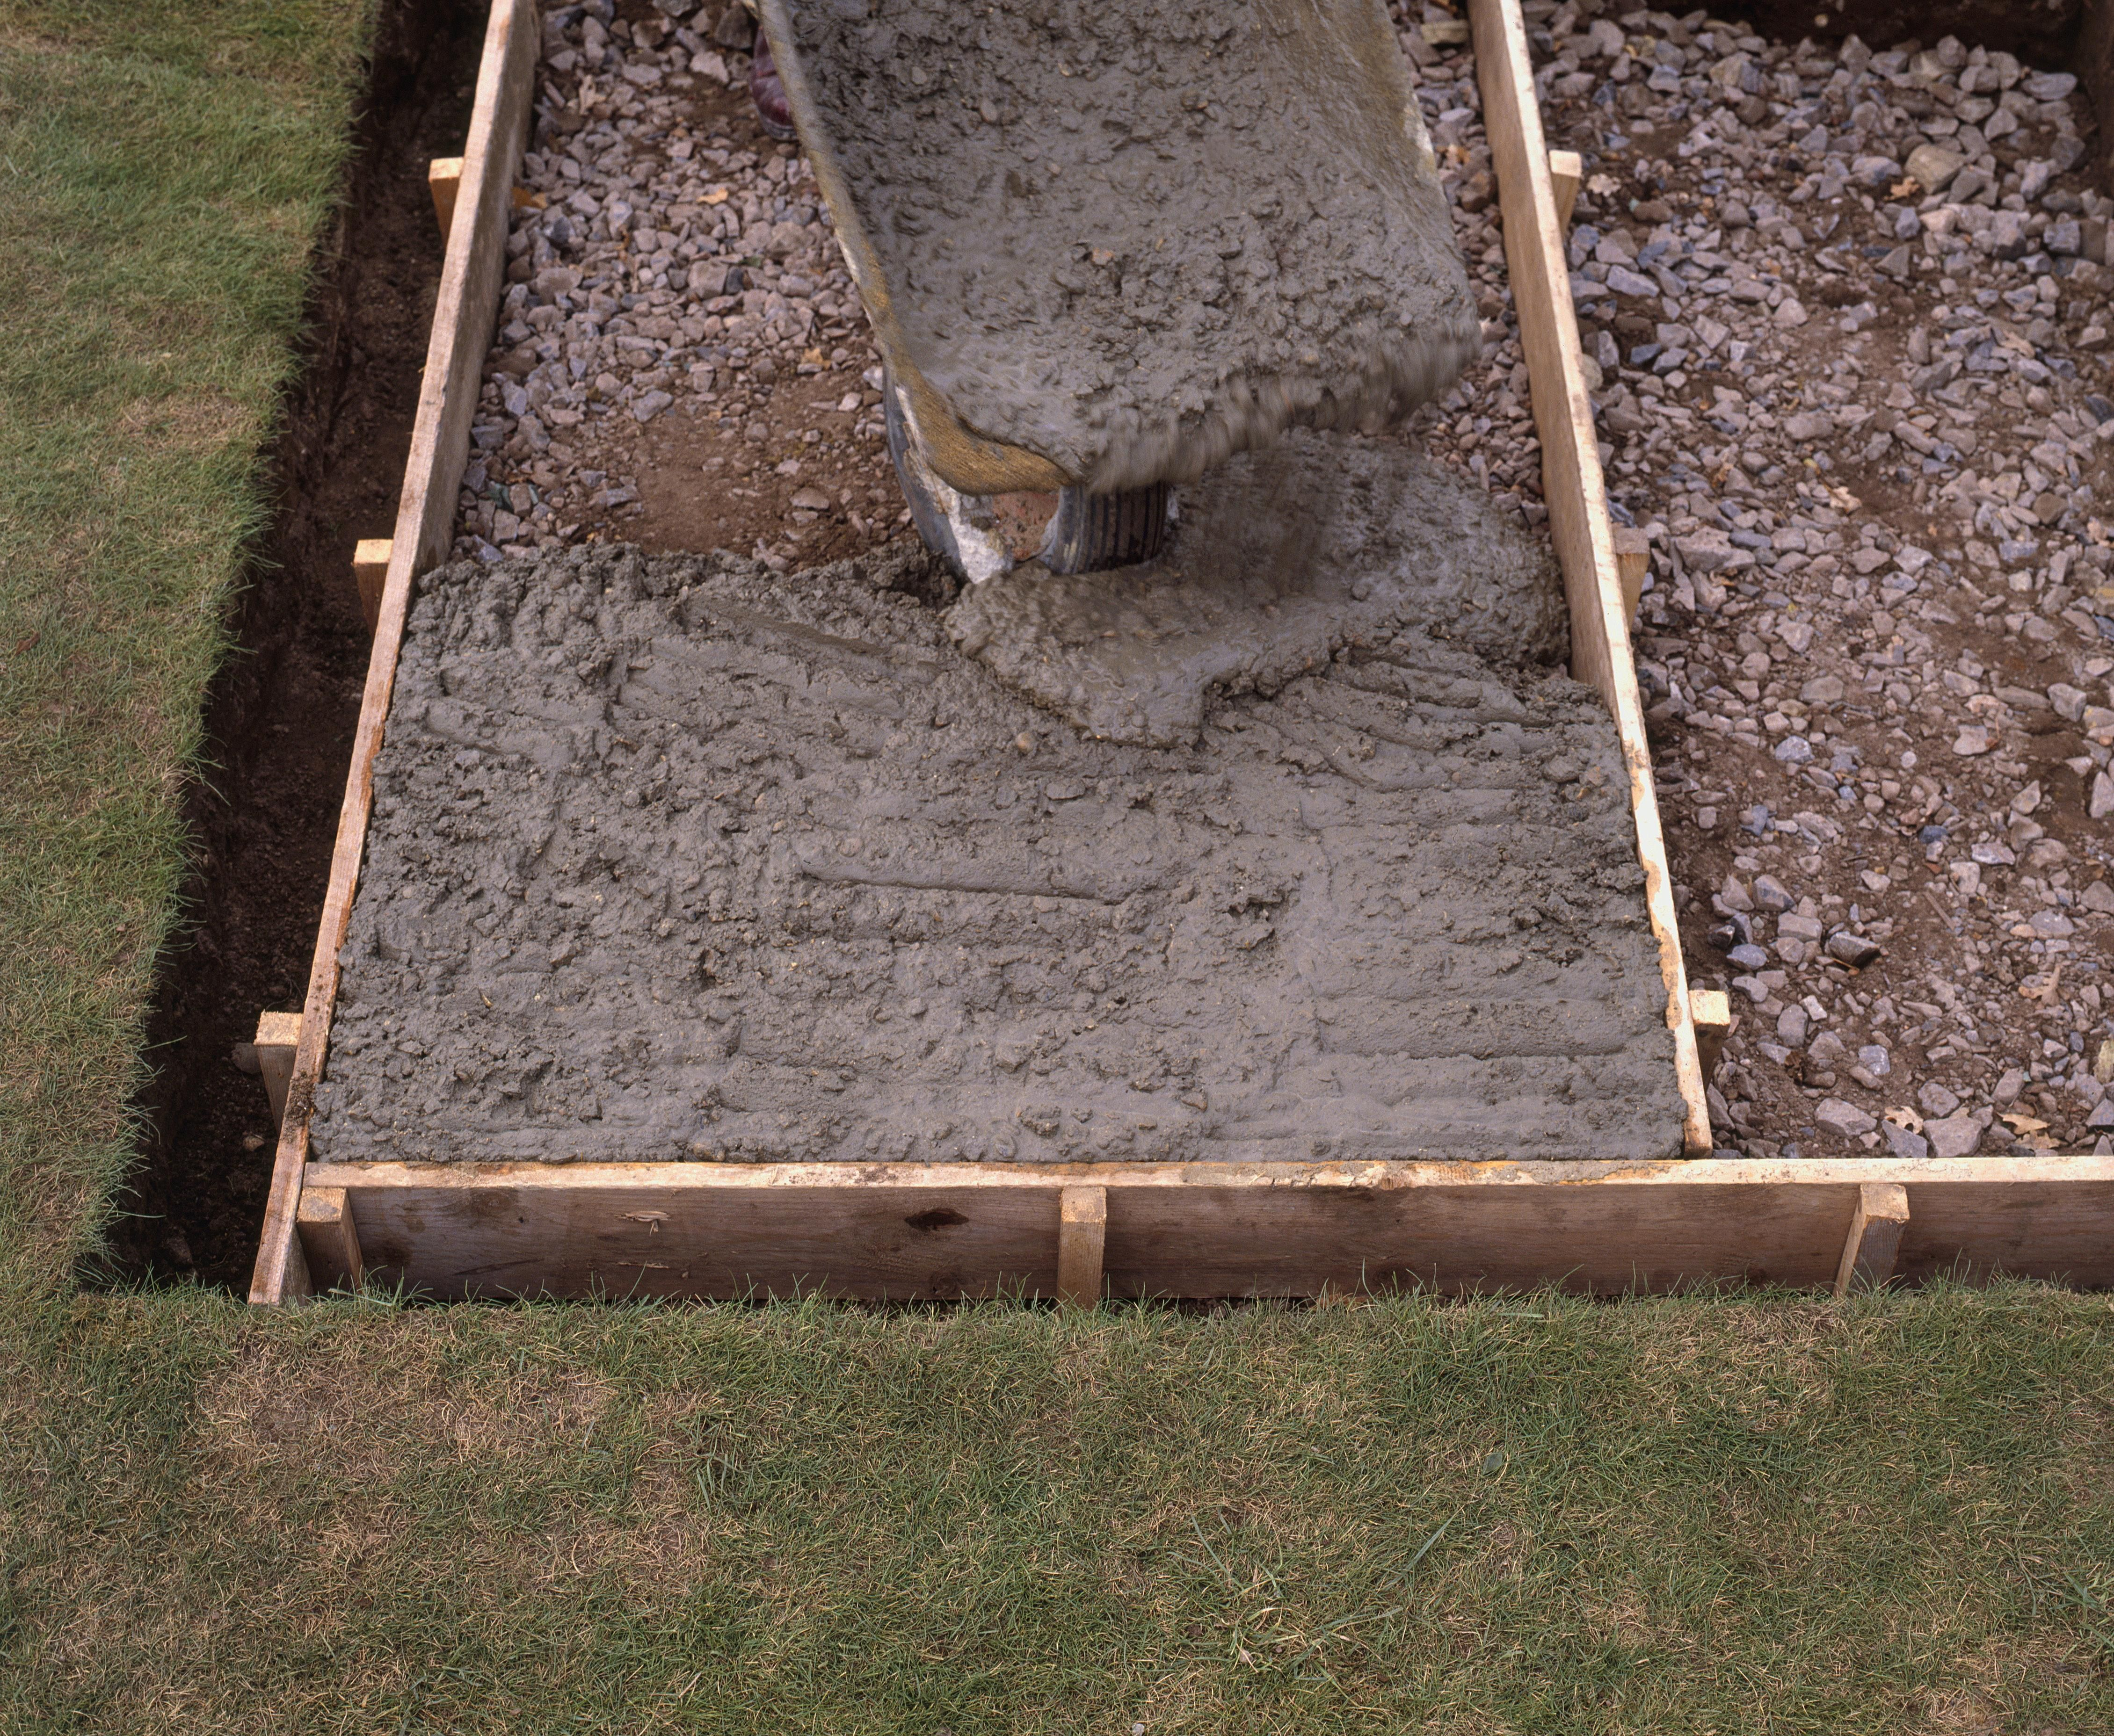 When Is the Best Time to Pour a Concrete Patio?